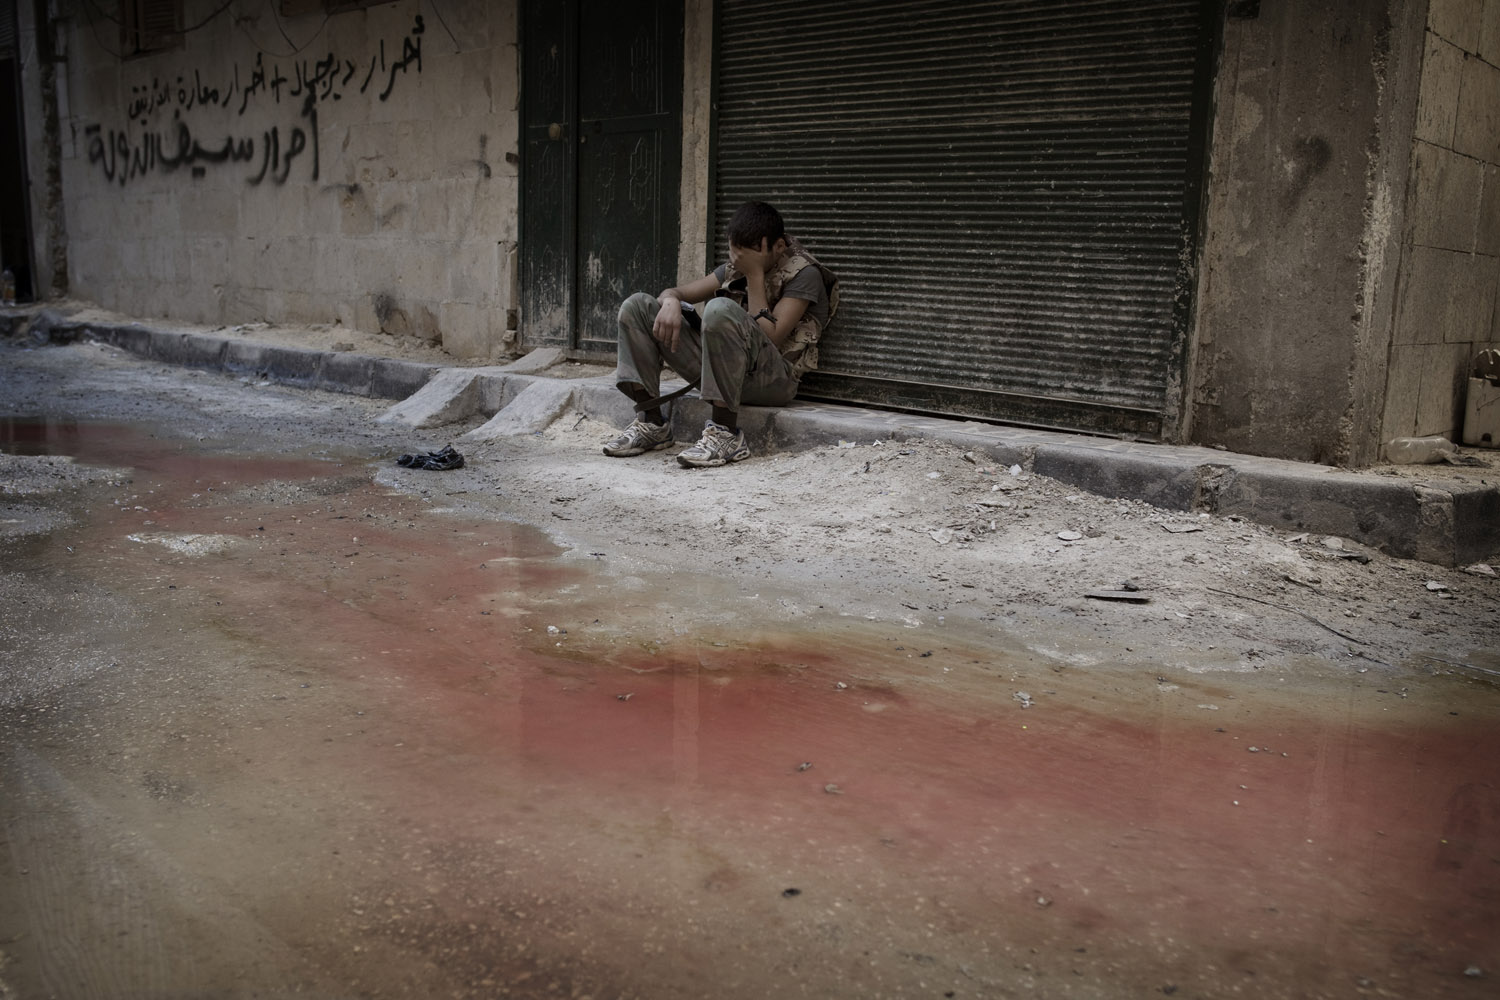 Sept. 2, 2012. A Free Syrian Army fighter rests in exhaustion after heavy fighting in Aleppo, Syria.